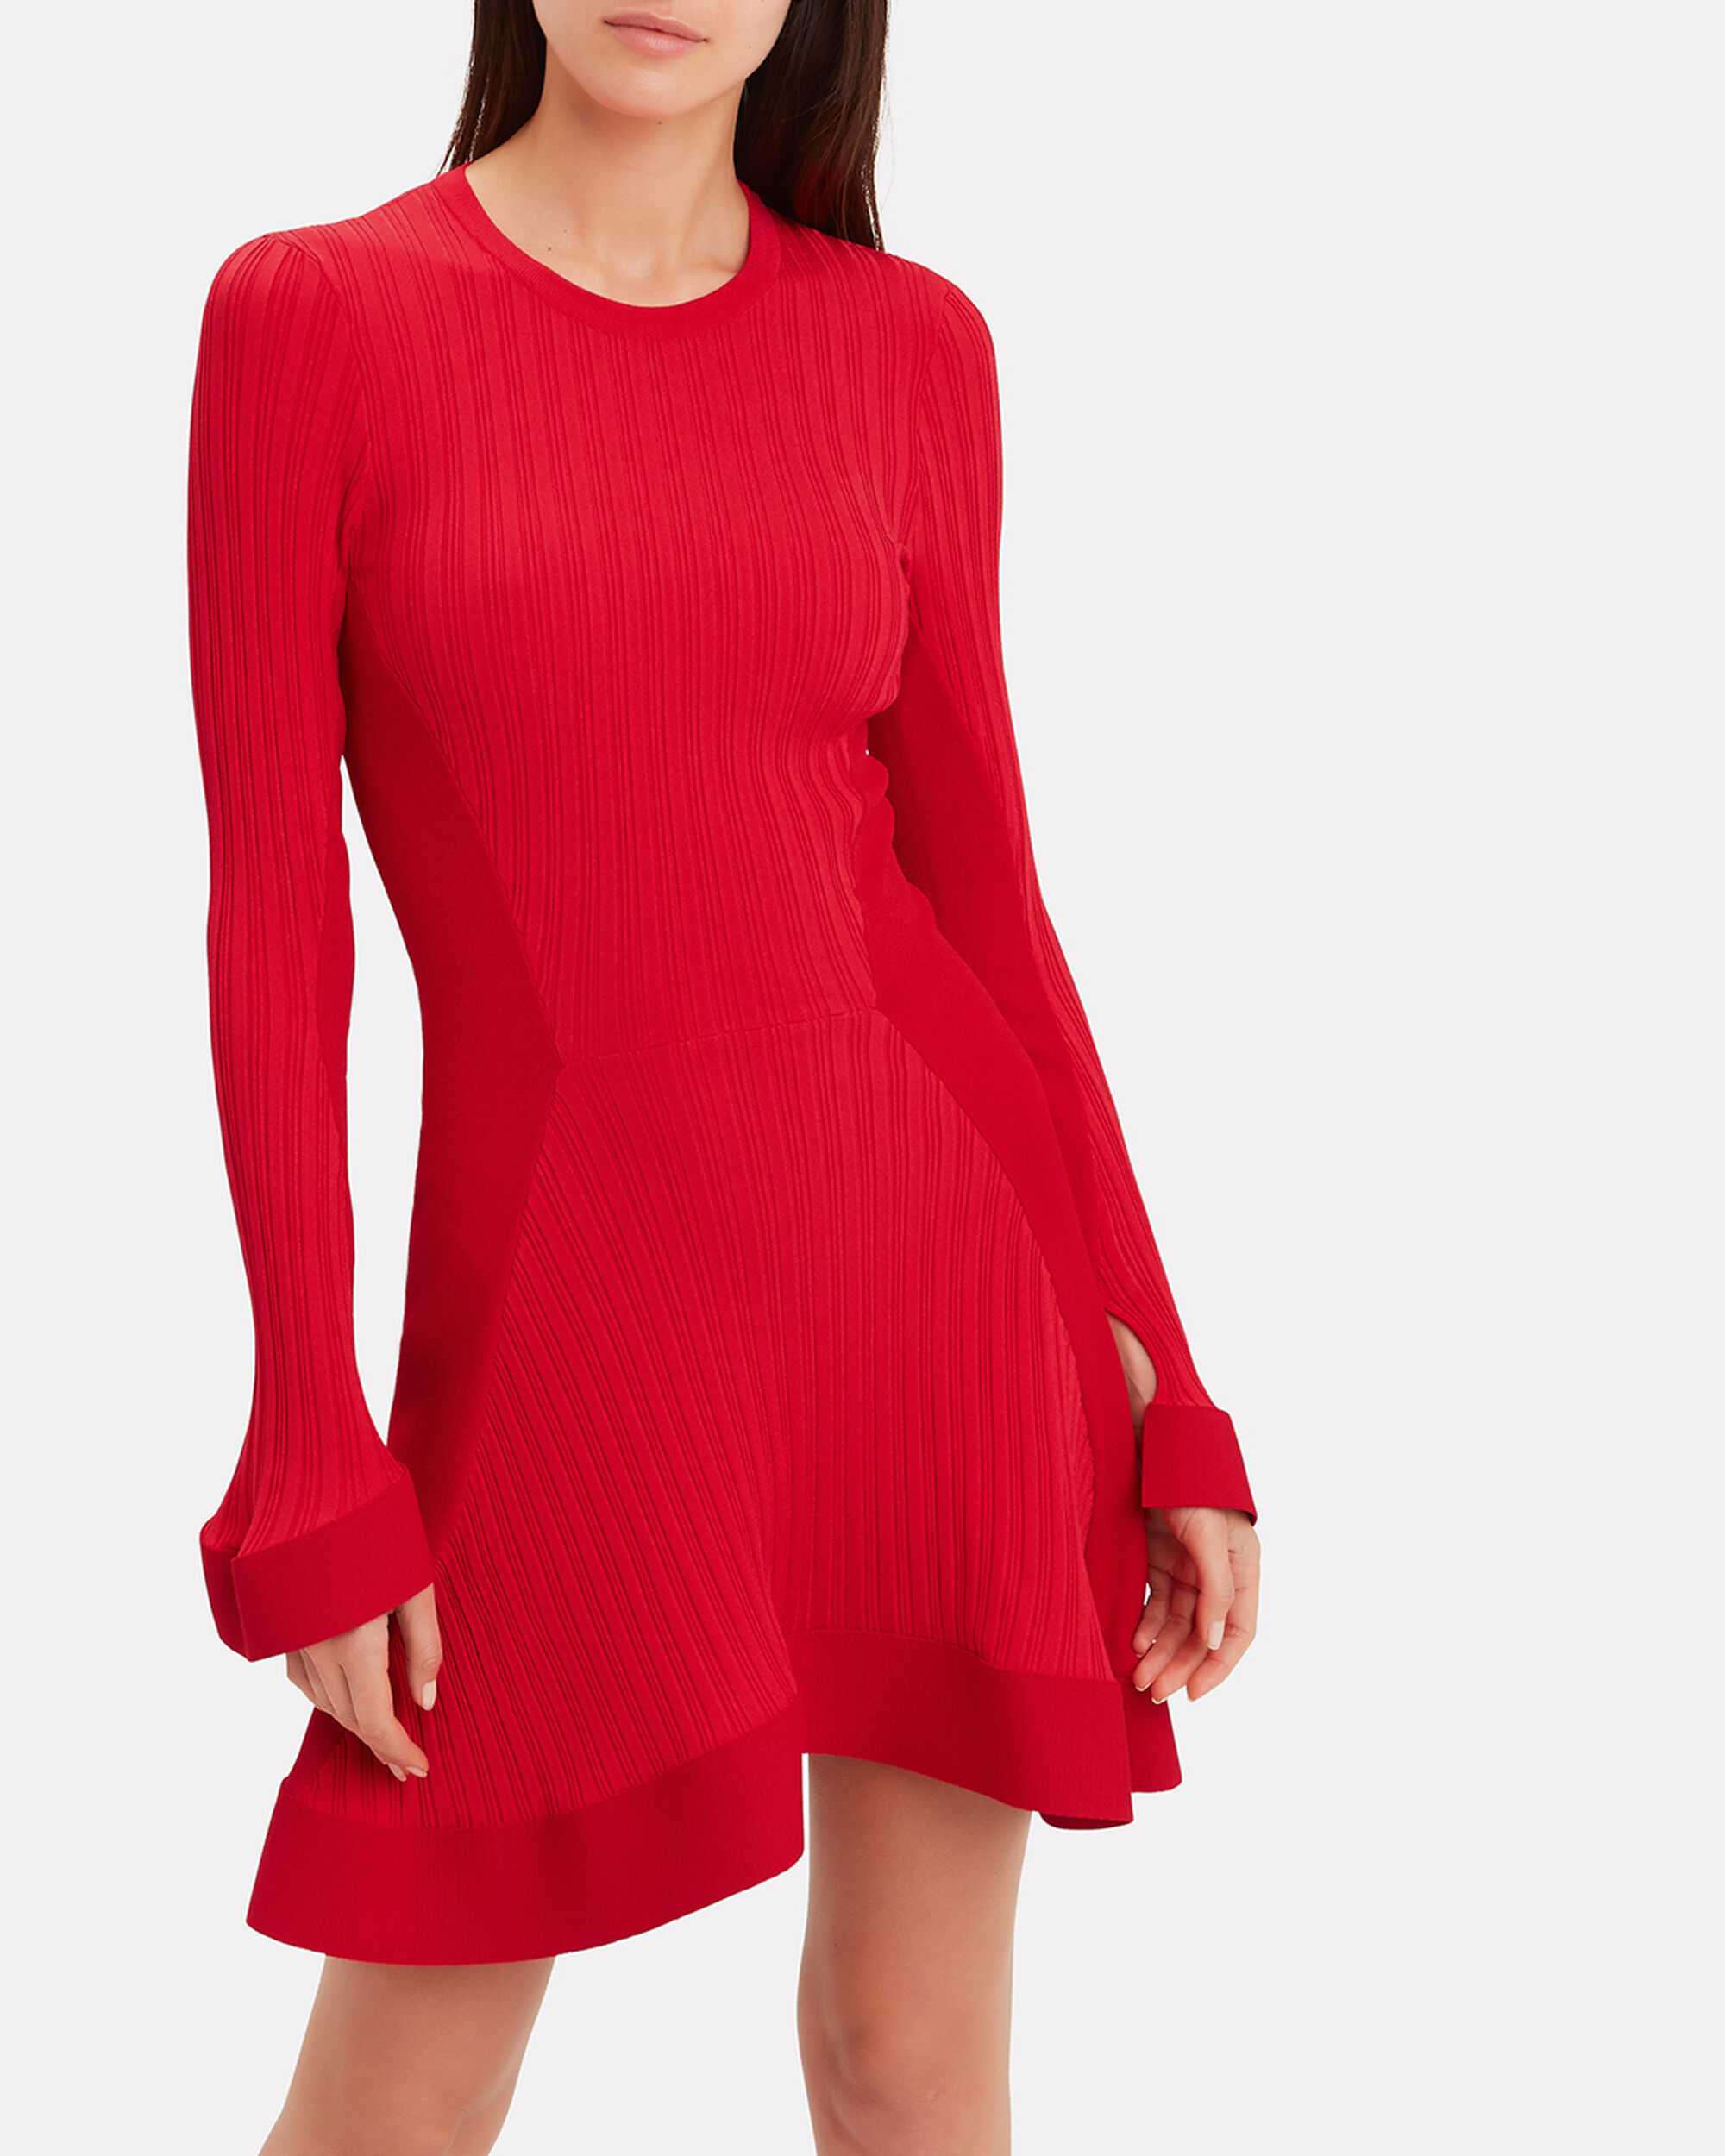 Red Knit Ruffle Hem Mini Dress, RED, hi-res